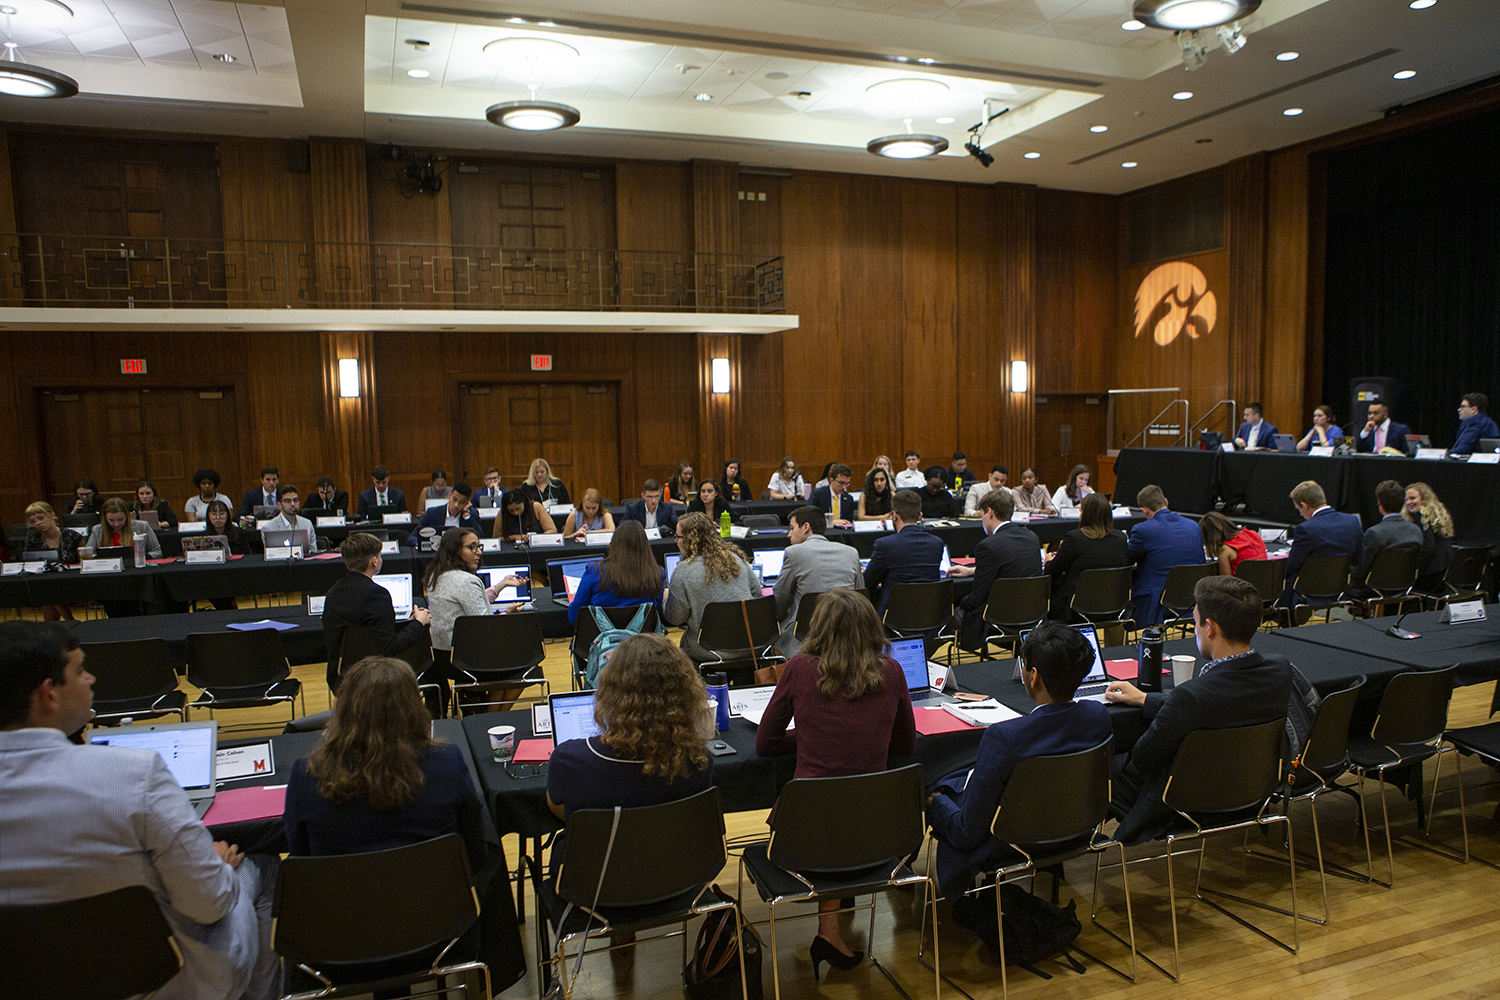 UISG senators discuss legislation for all Big 10 universities during the Big 10 UISG conference in the Second Floor Ballroom of the IMU on July 20, 2019.